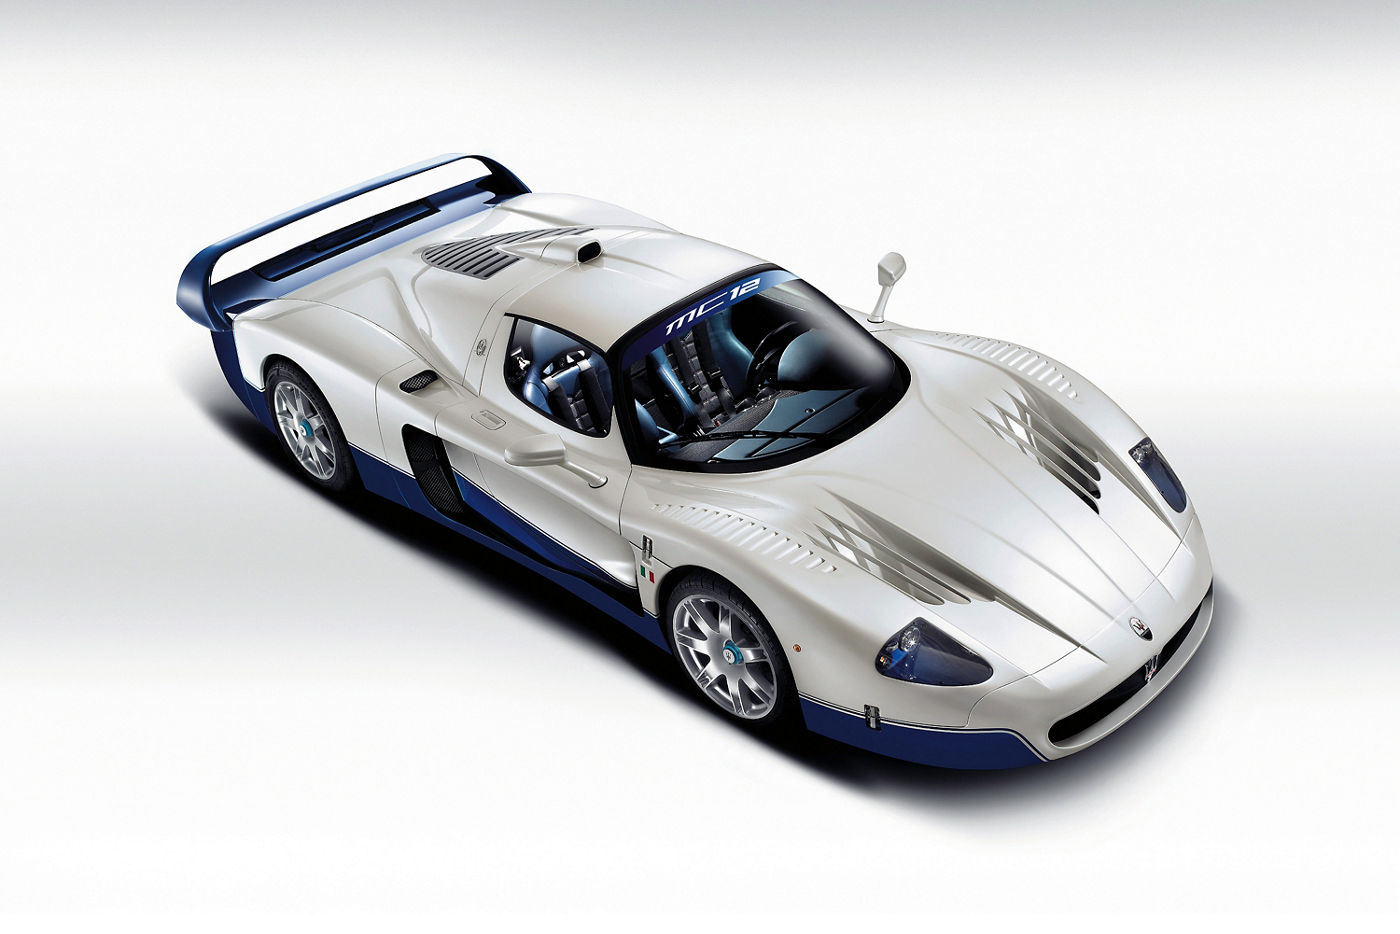 2004 Maserati MC12 Stradale (road-going) - the GT racing car - exterior of the classic sports cars